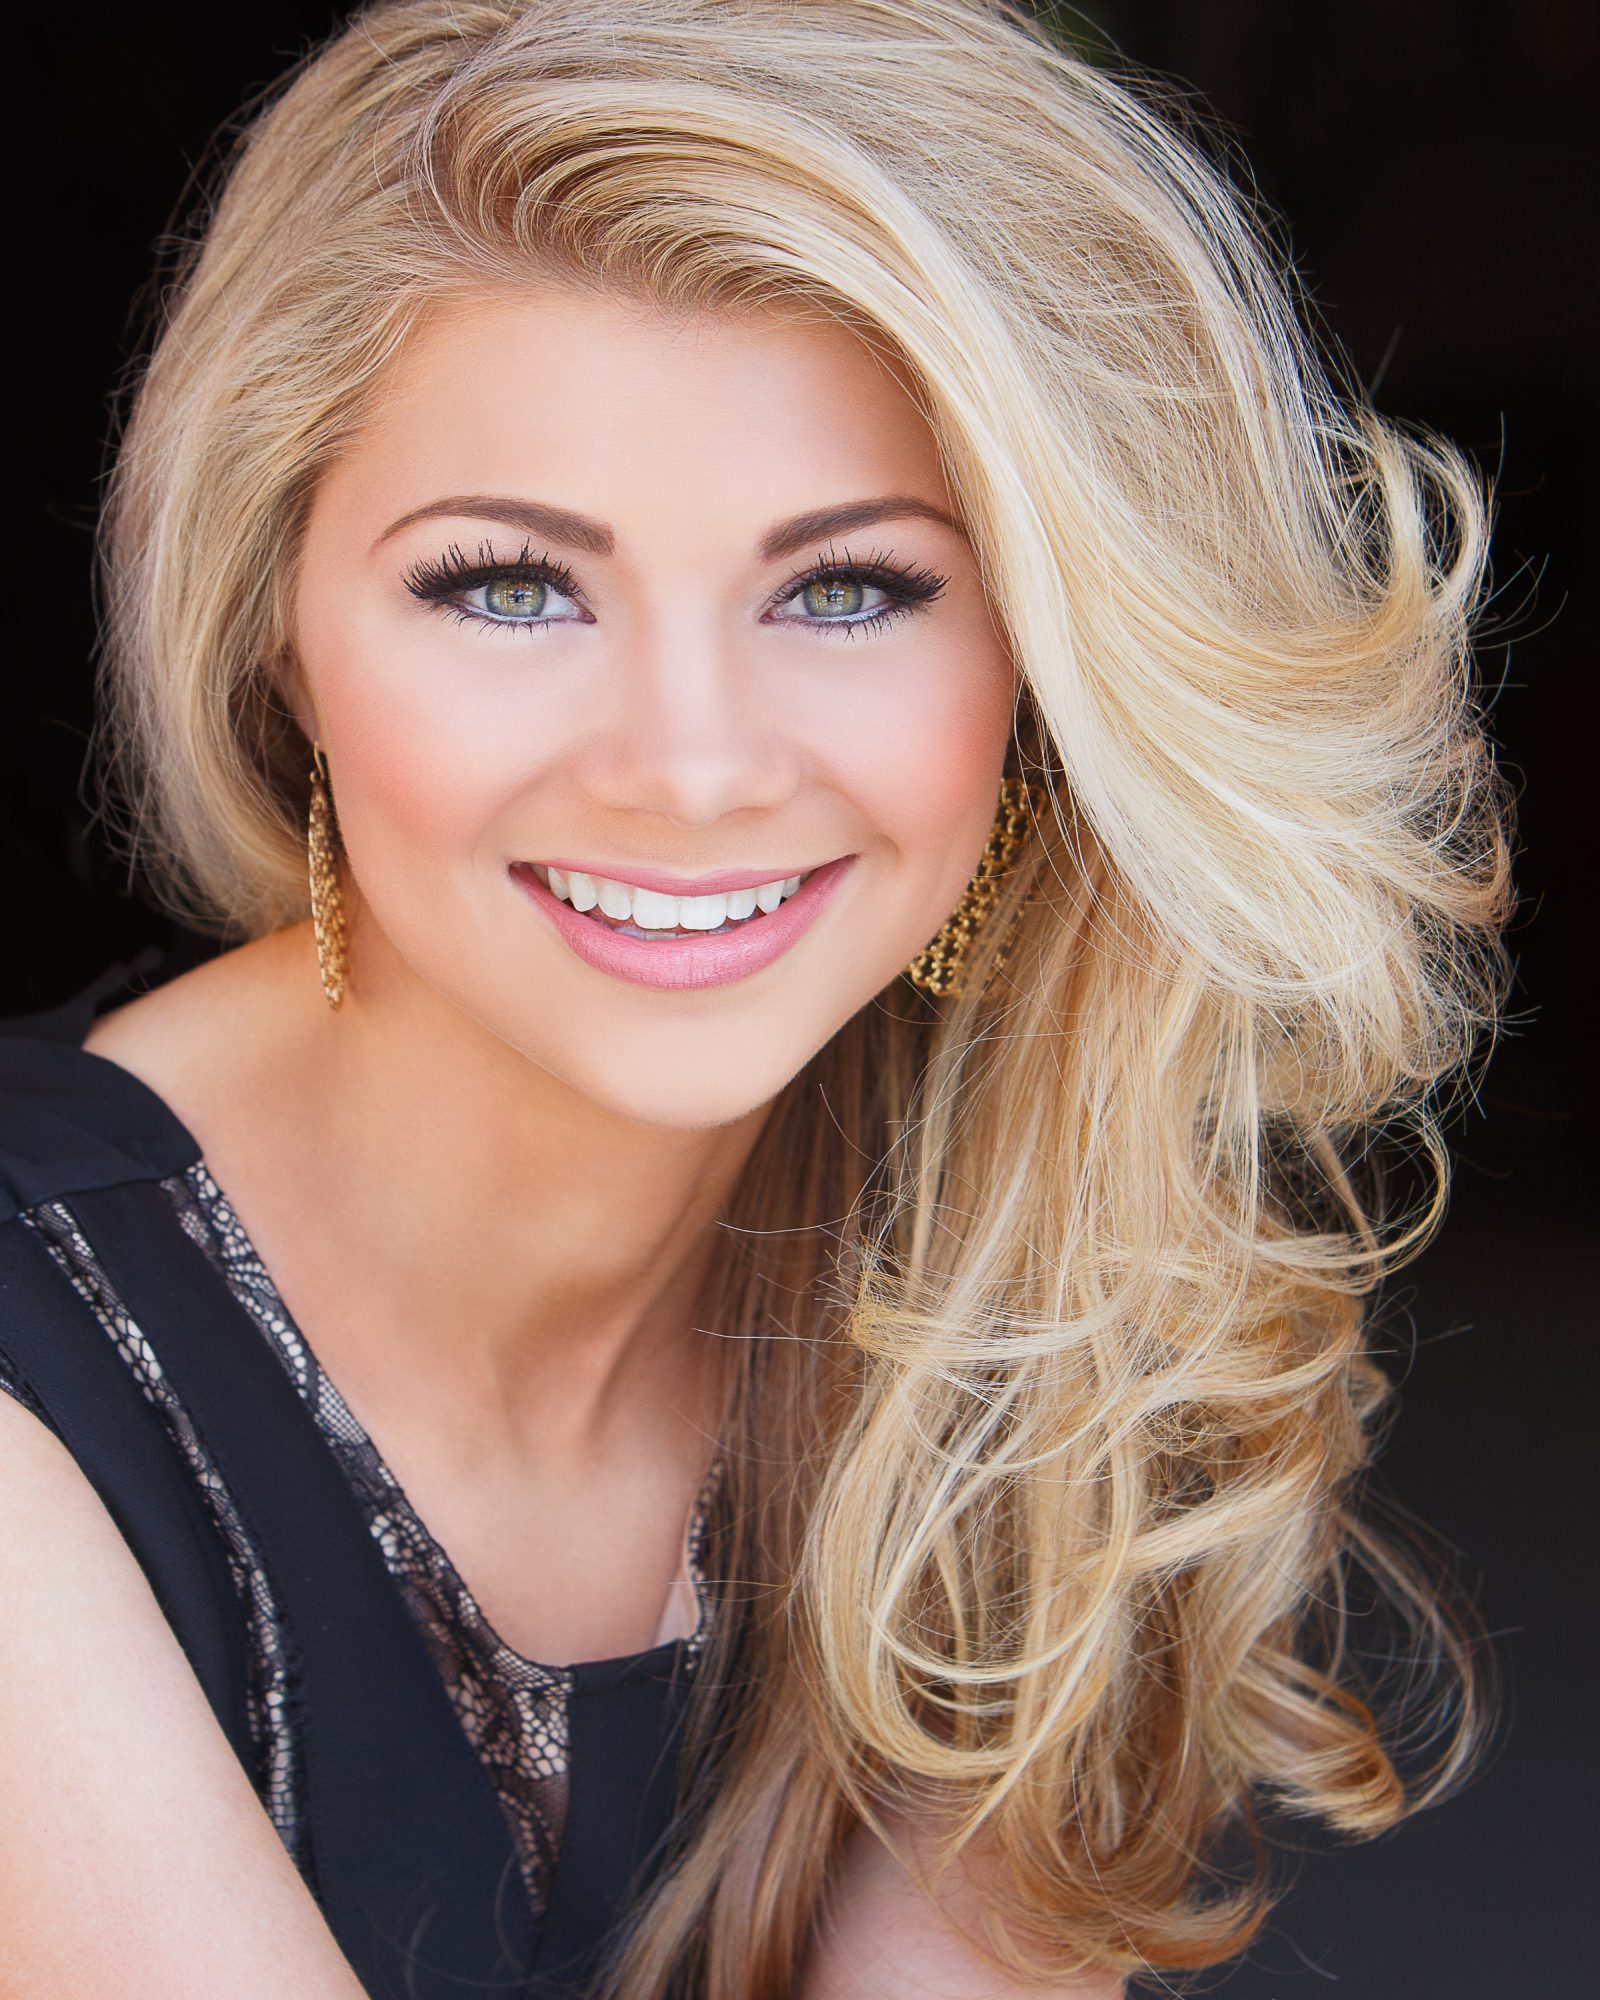 miss-north-carolina-beth-stovall.jpg